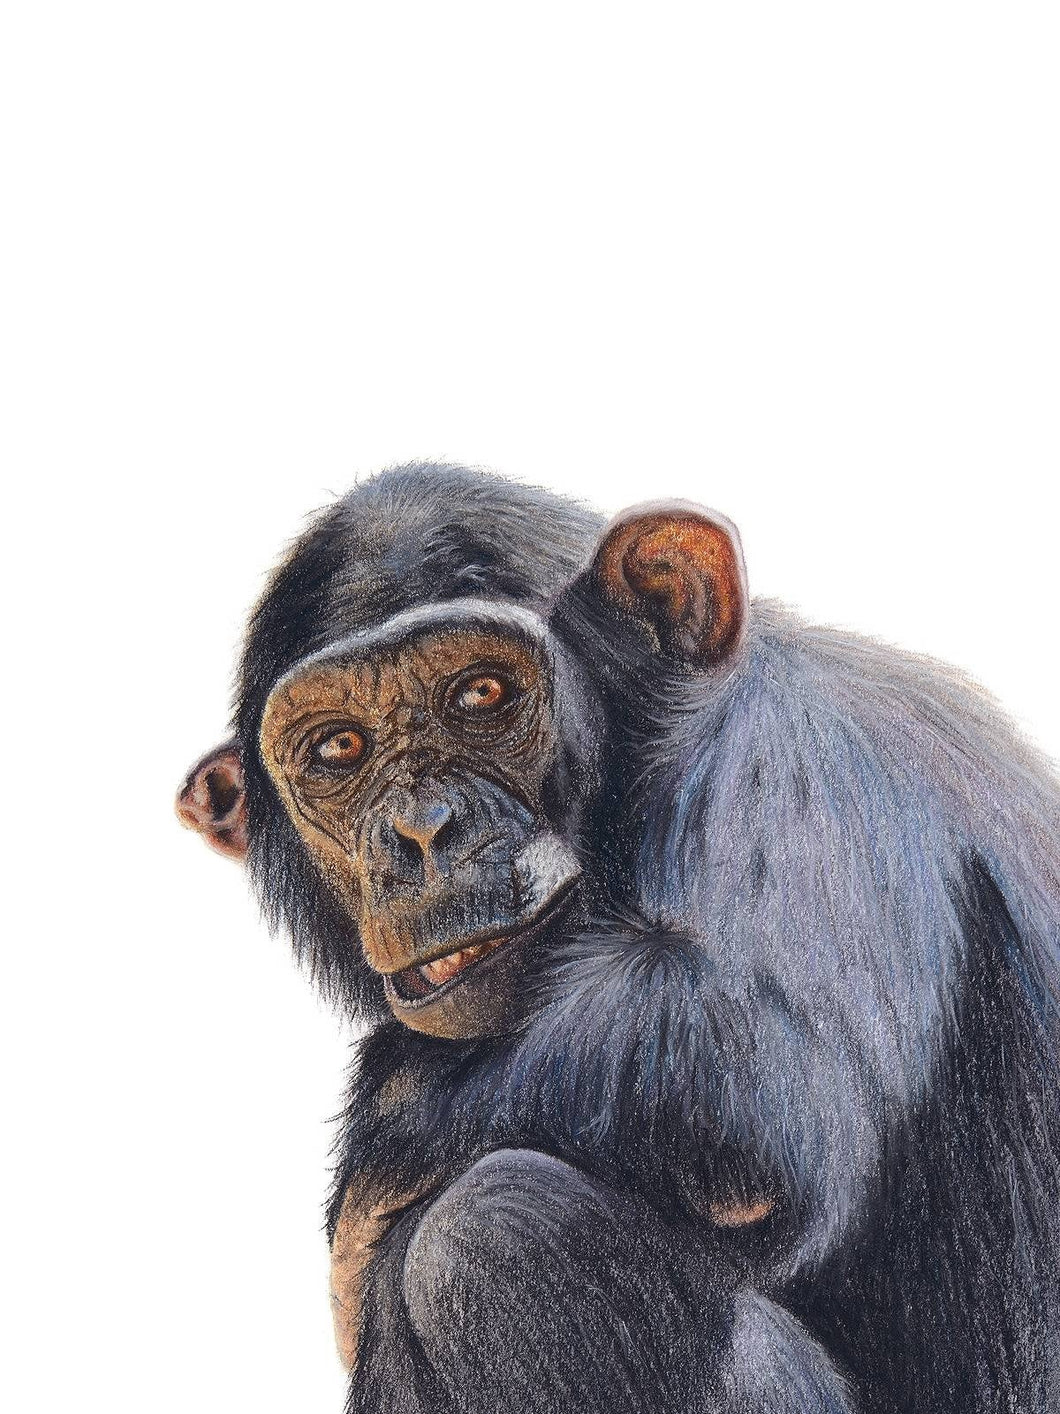 Chimpanzee wildlife giclee wall art print